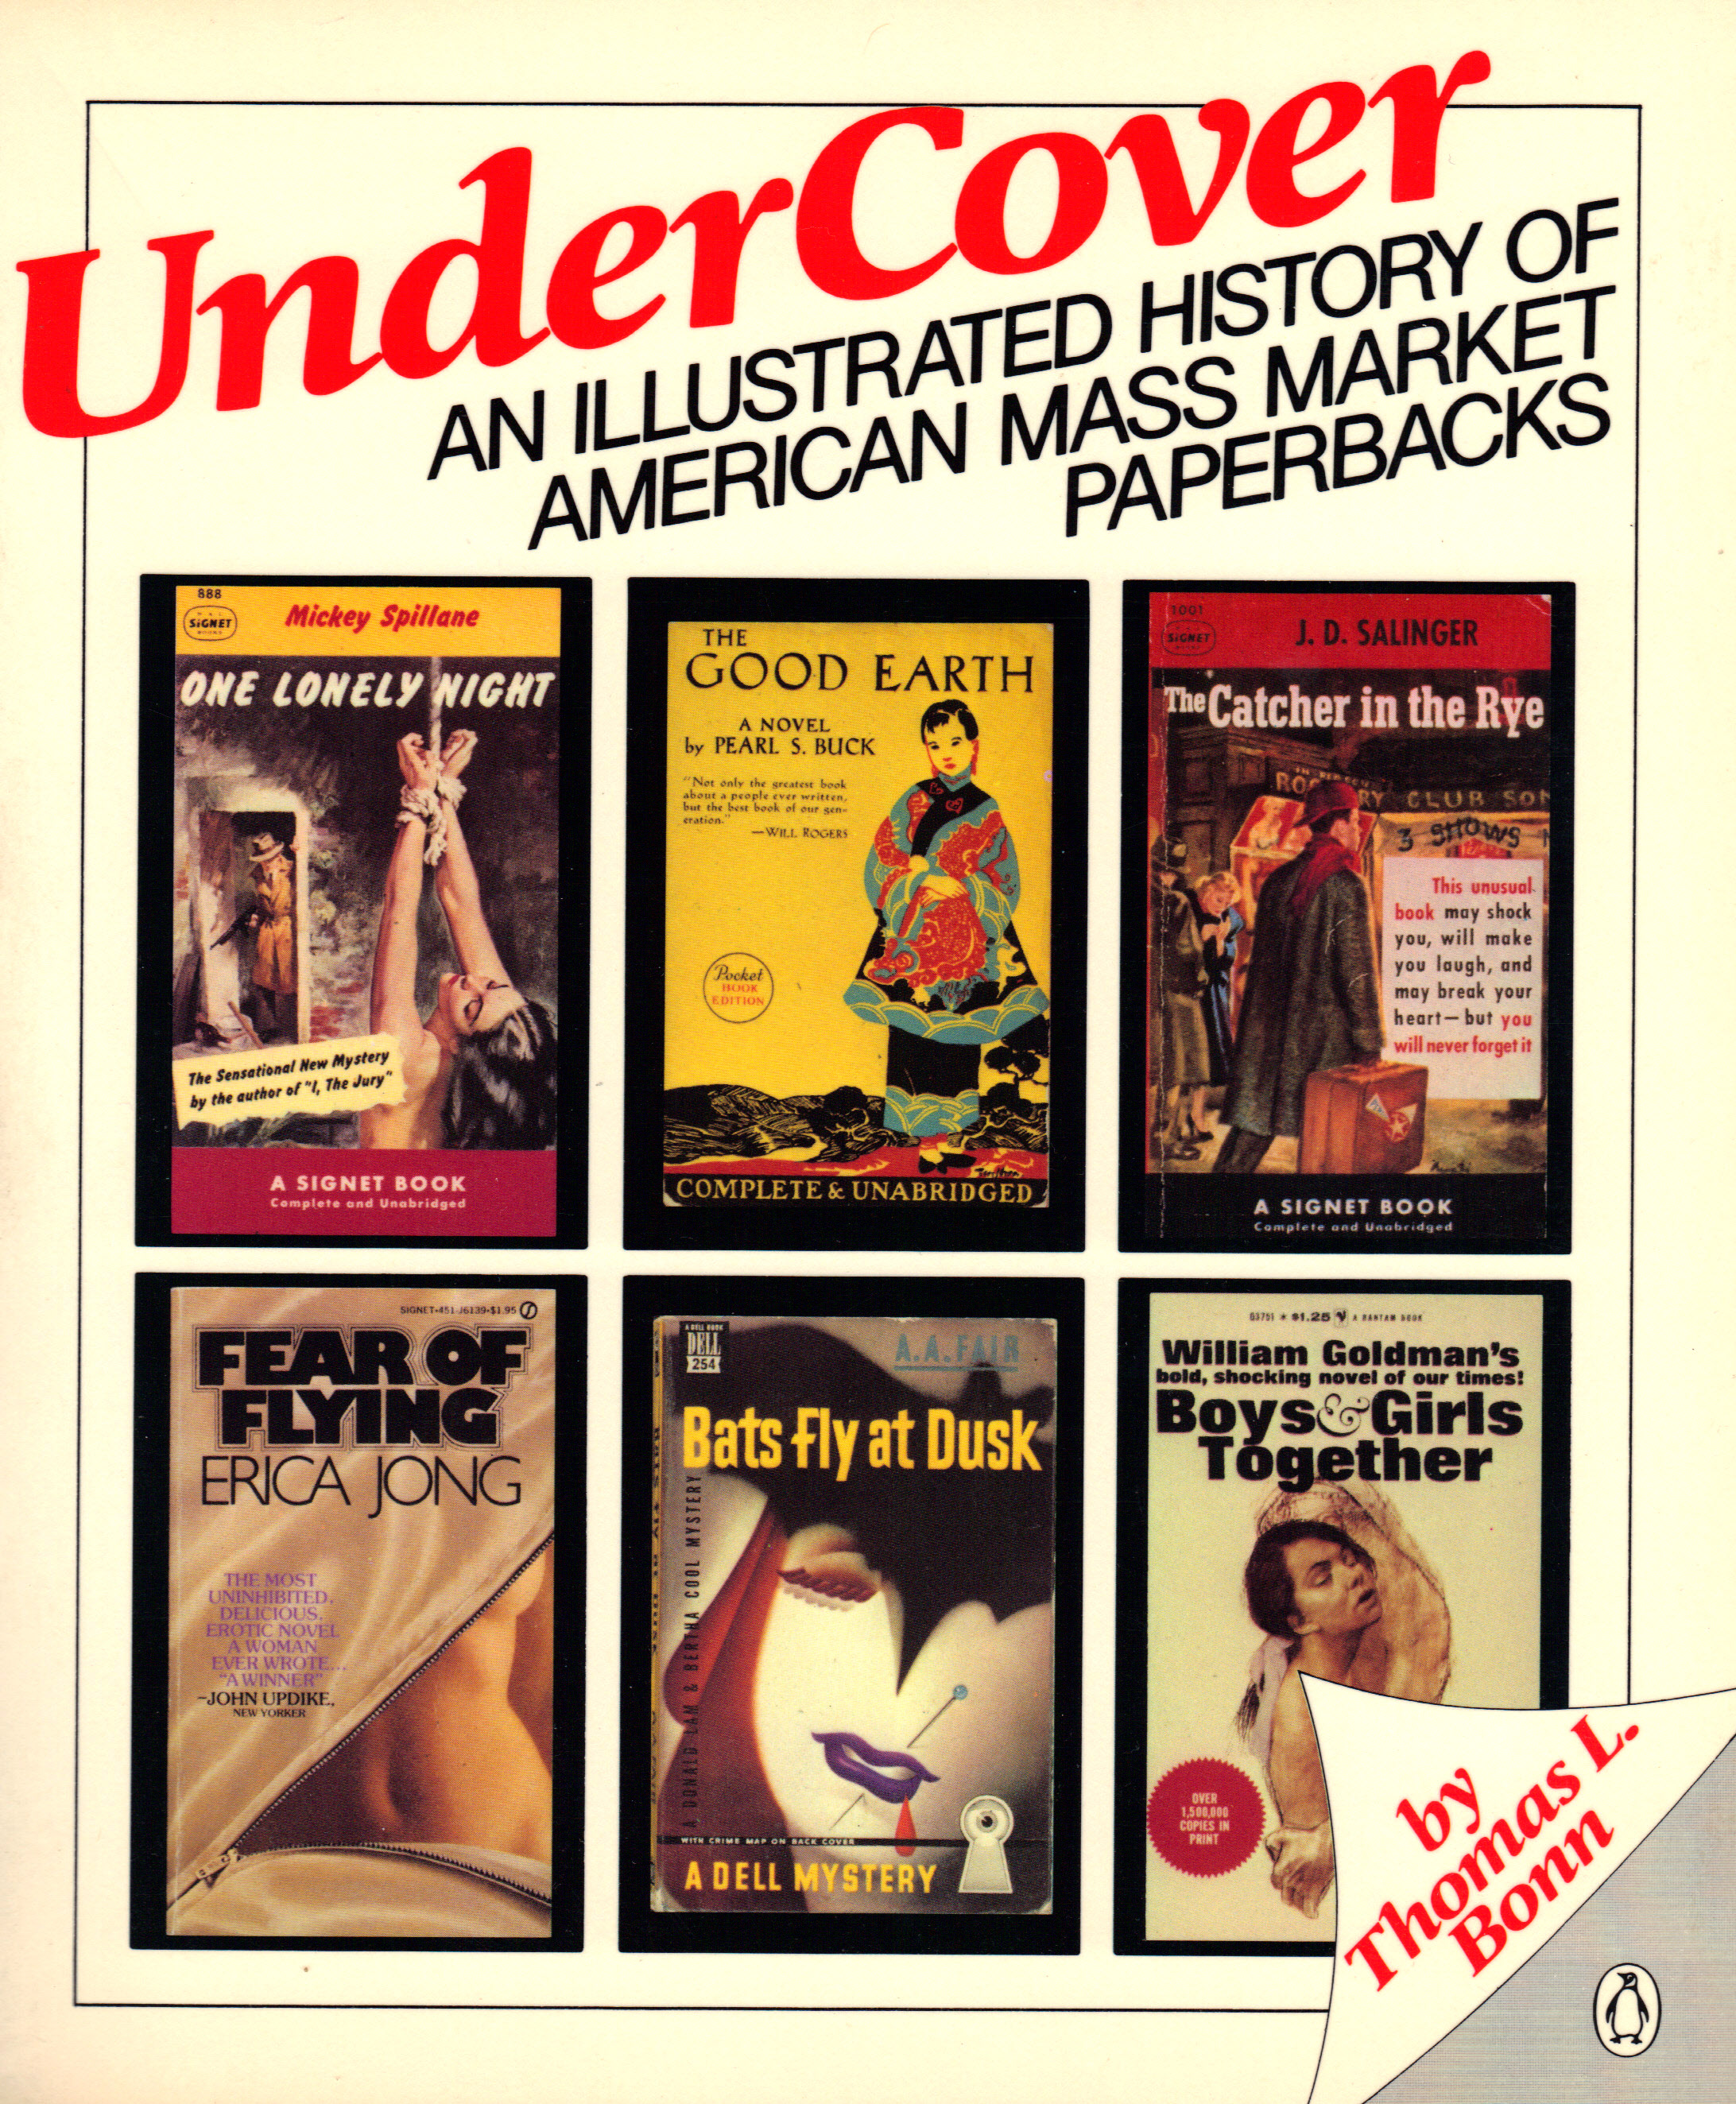 Image for UNDER COVER, An Illustrated History of American Mass Market Paperbacks